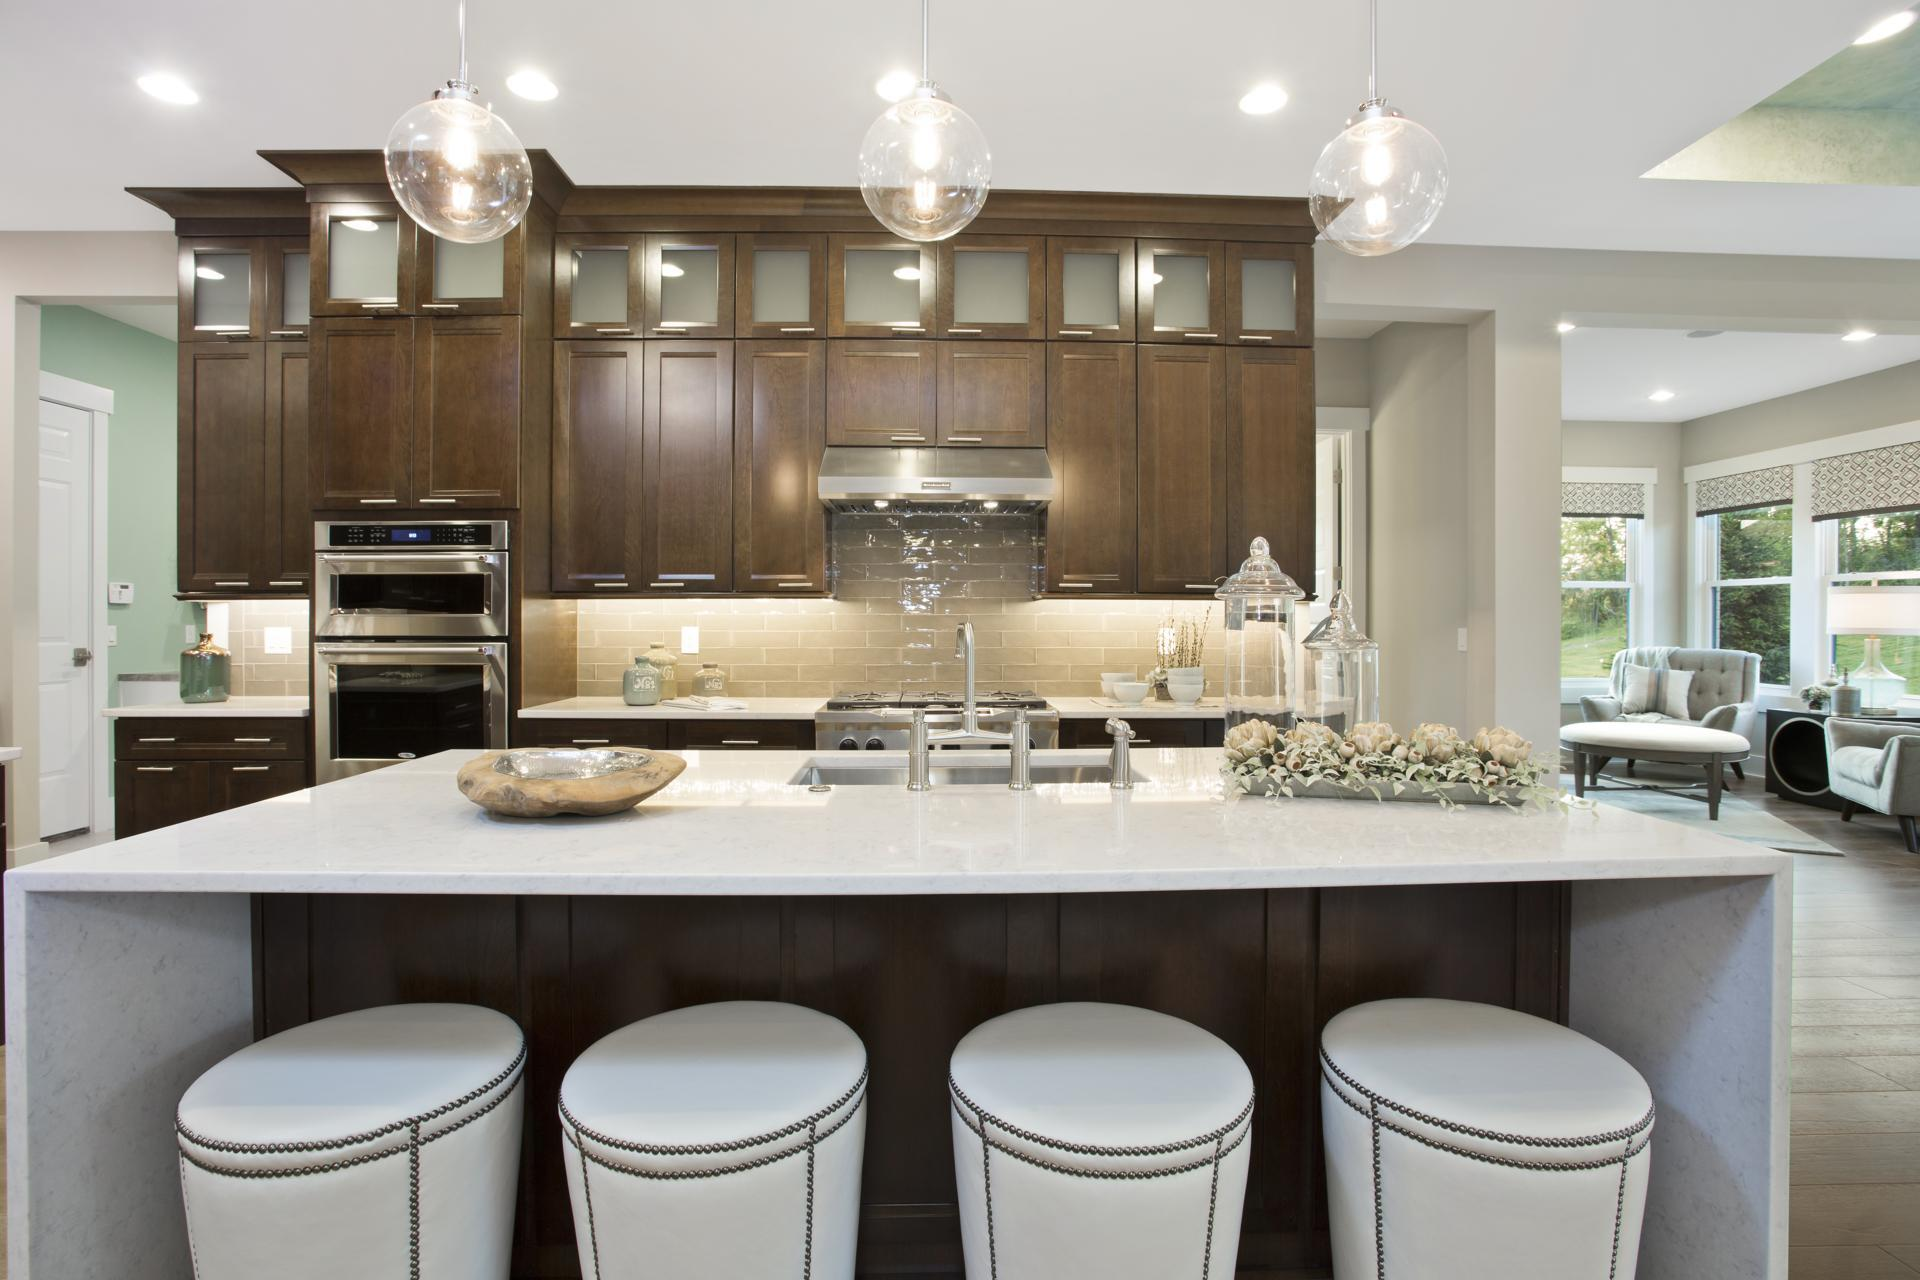 Kitchen featured in the Sebastian By Drees Homes in Indianapolis, IN